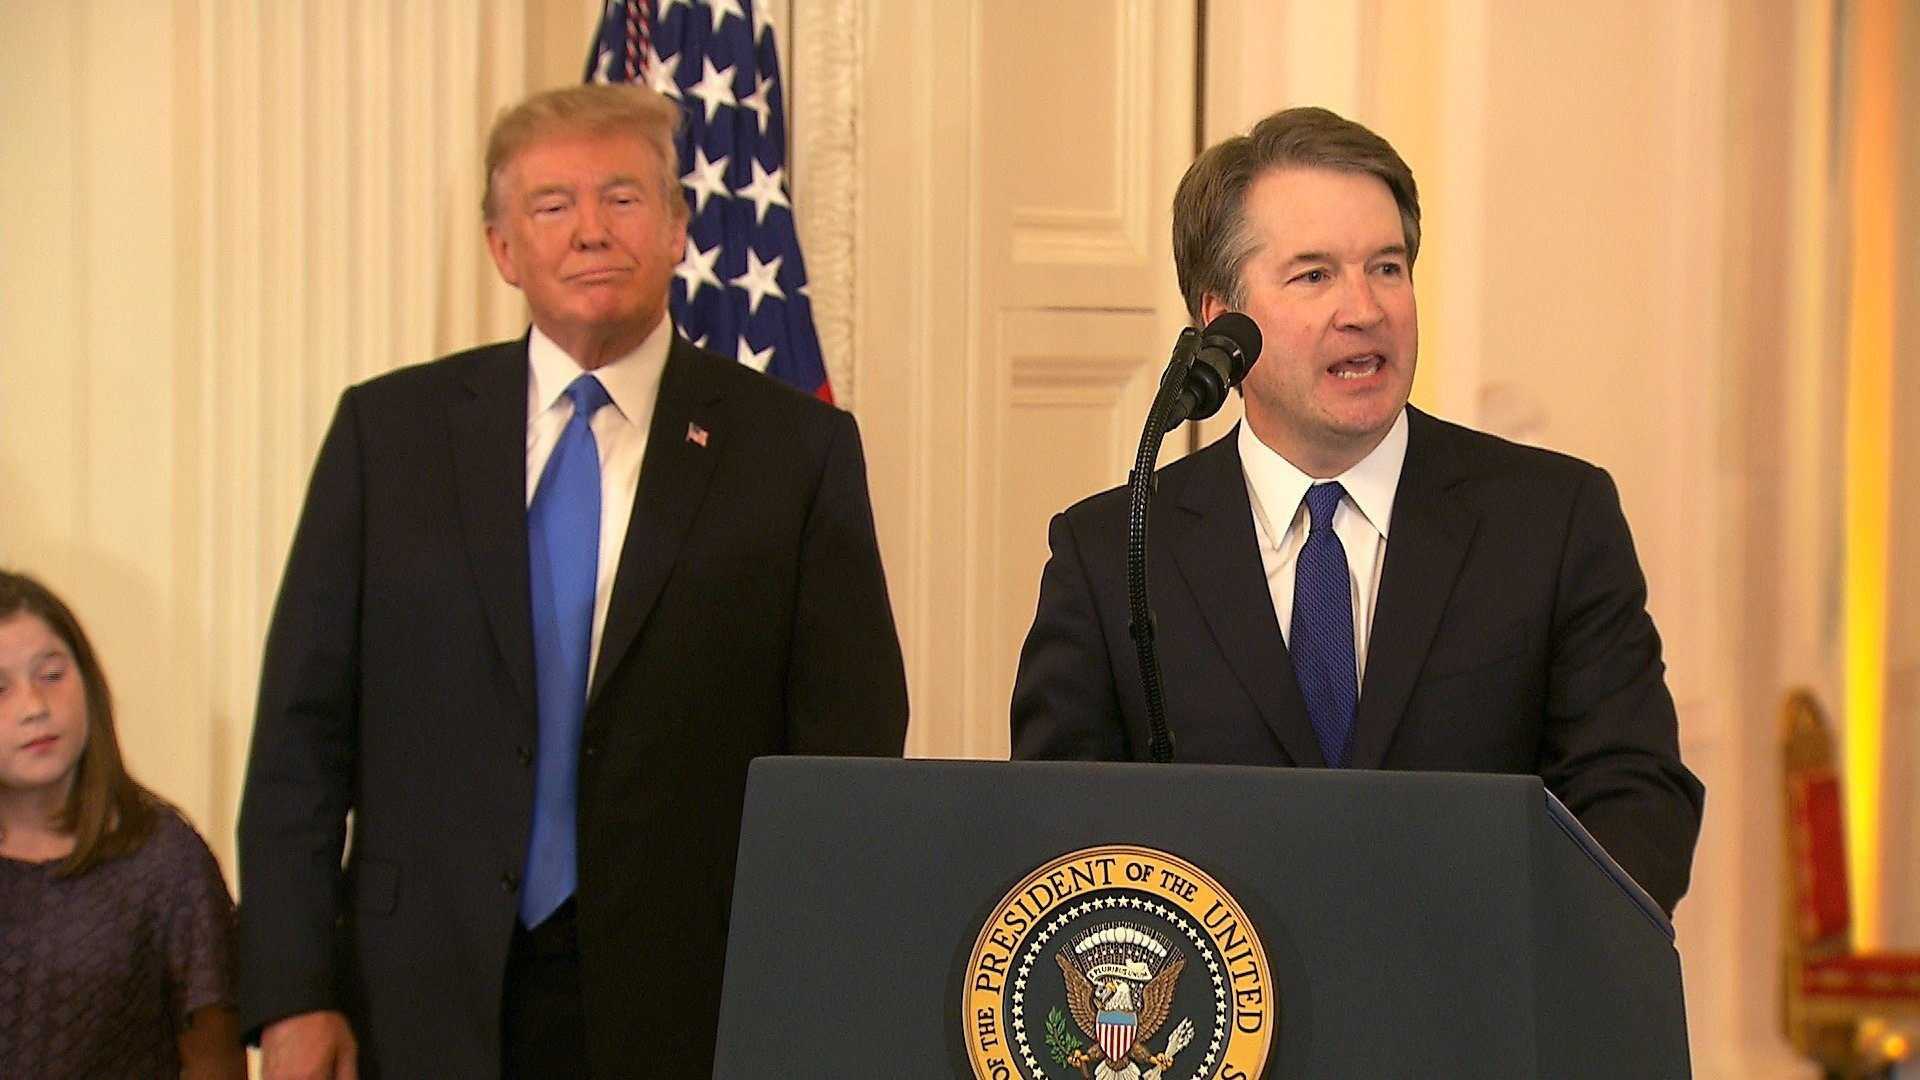 The party lines are set. Republicans want Brett Kavanaugh confirmed to the Supreme Court and Democratic leaders like Chuck Schumer are already mobilizing against Kavanaugh.